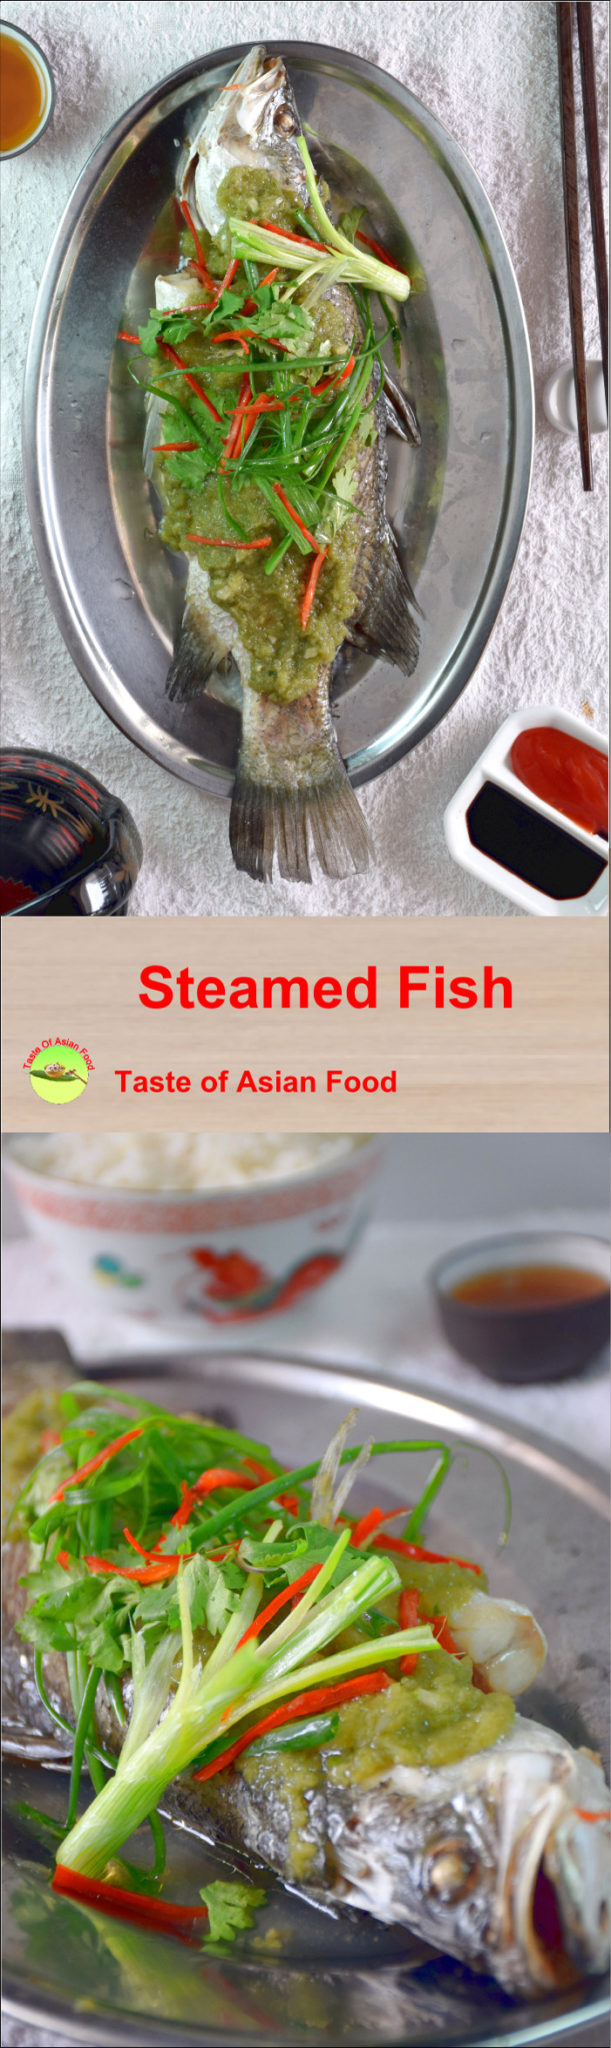 steamed fish pin